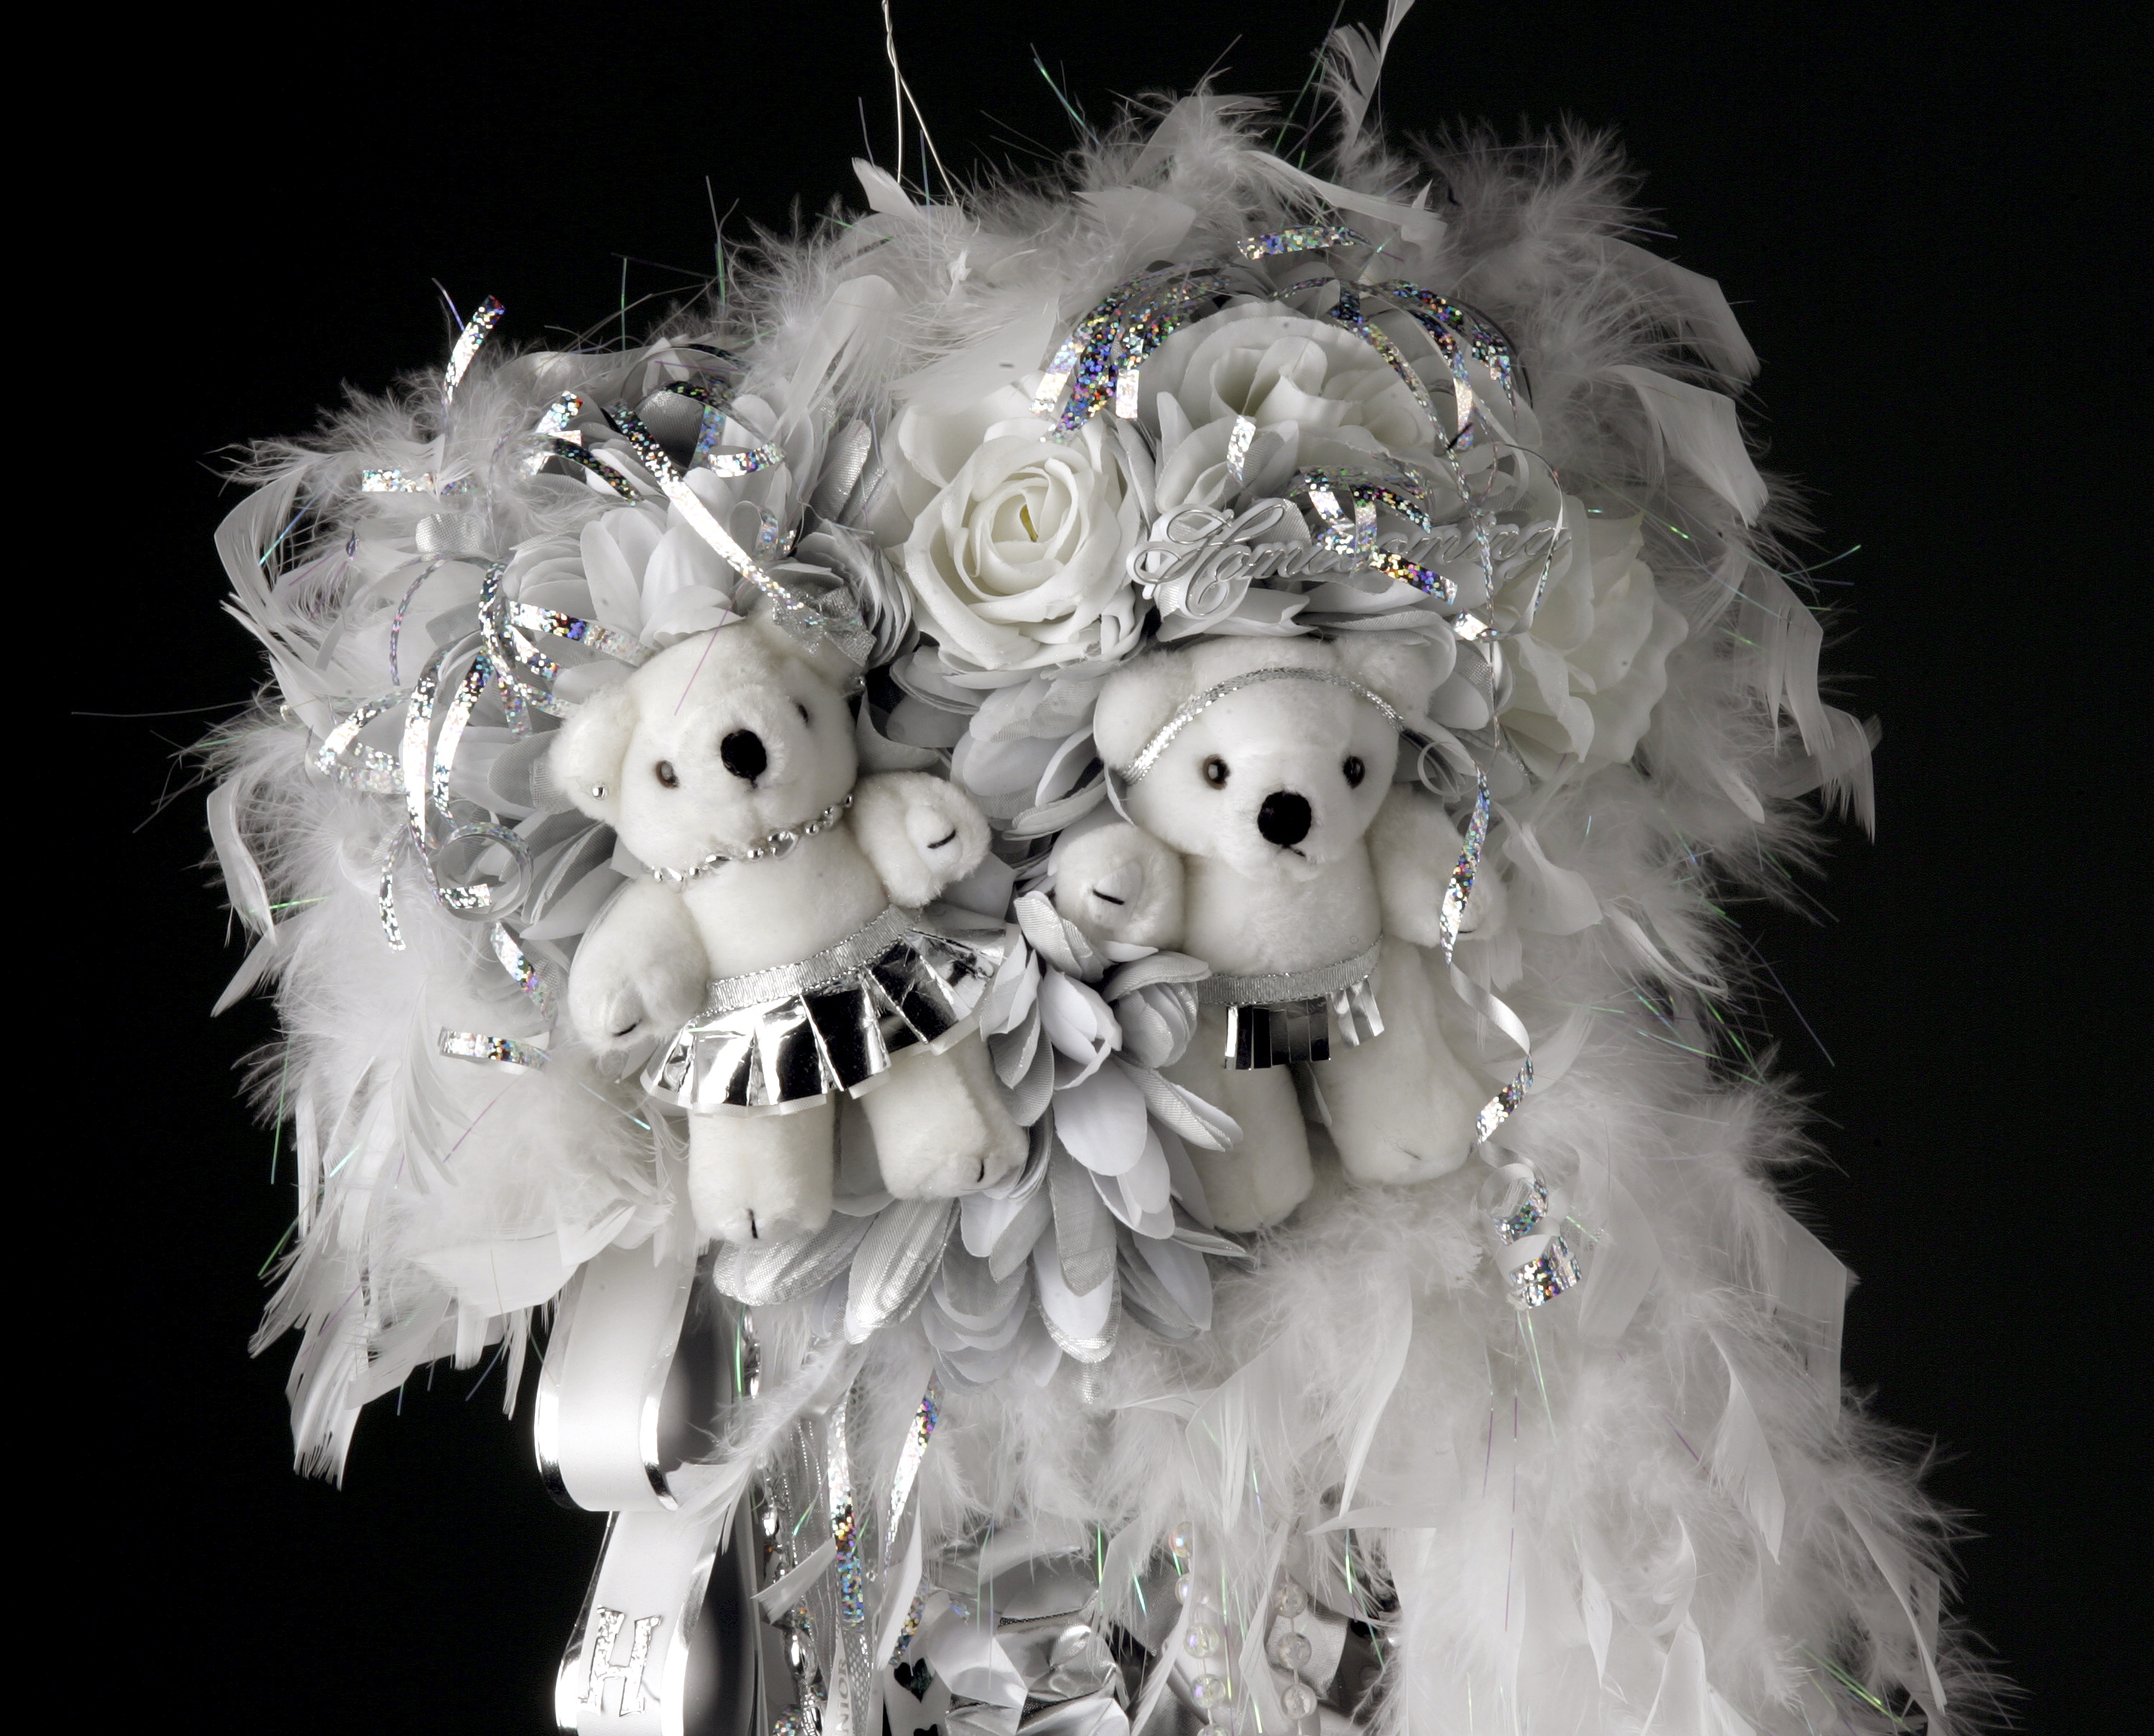 A silver and white homecoming mum with stuffed bears on it.